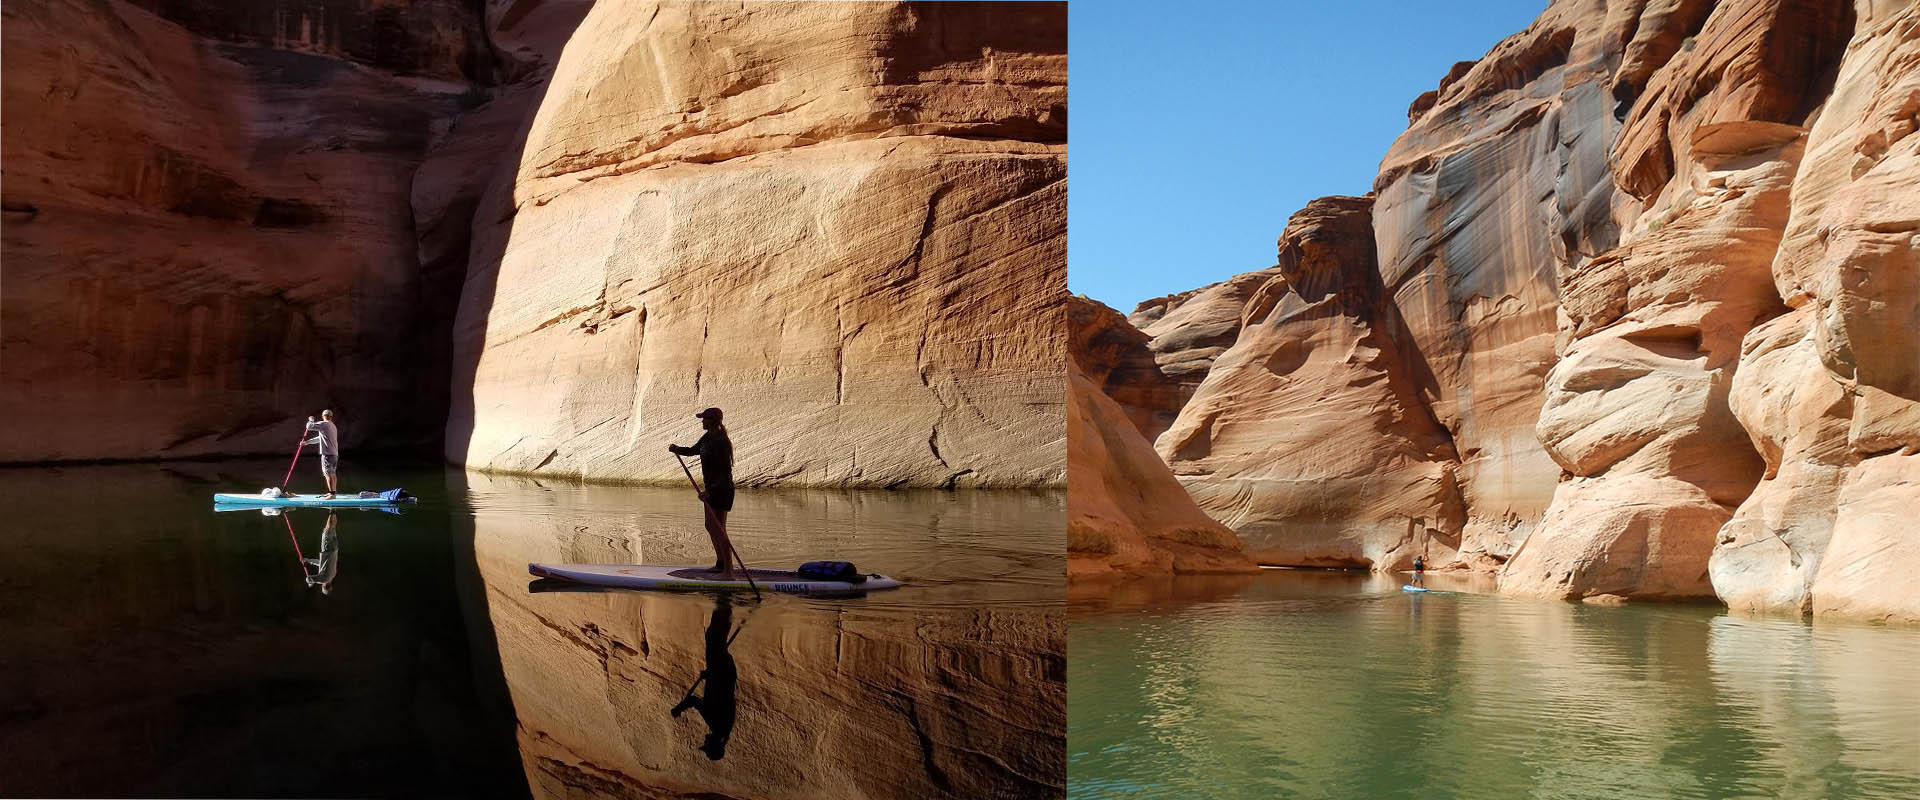 Owl swimming in slot canyon in lake powell cast casino royale james bond